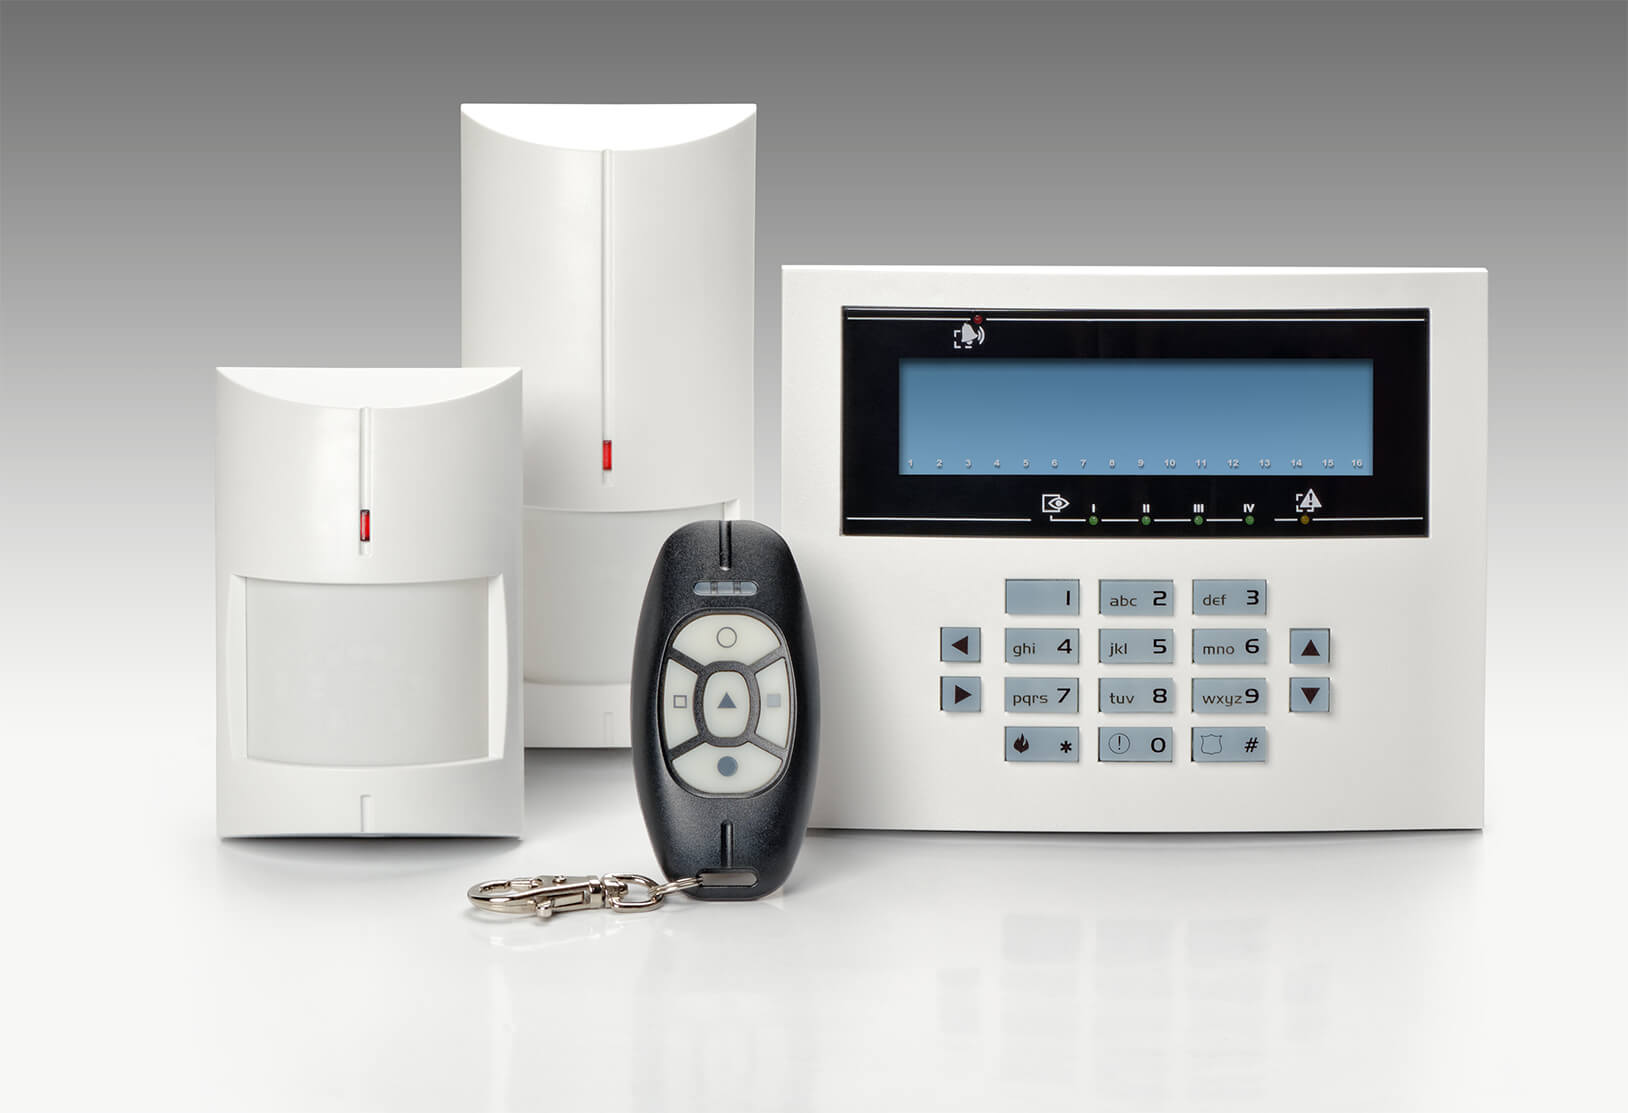 Business & Residential NSI / NACOSS Approved Burglar Alarms In Wood Green N10 - Local Wood Green N10 security company.Call 02078872244 - Dedicated to Safety & Security. Companies, shops and homes ..